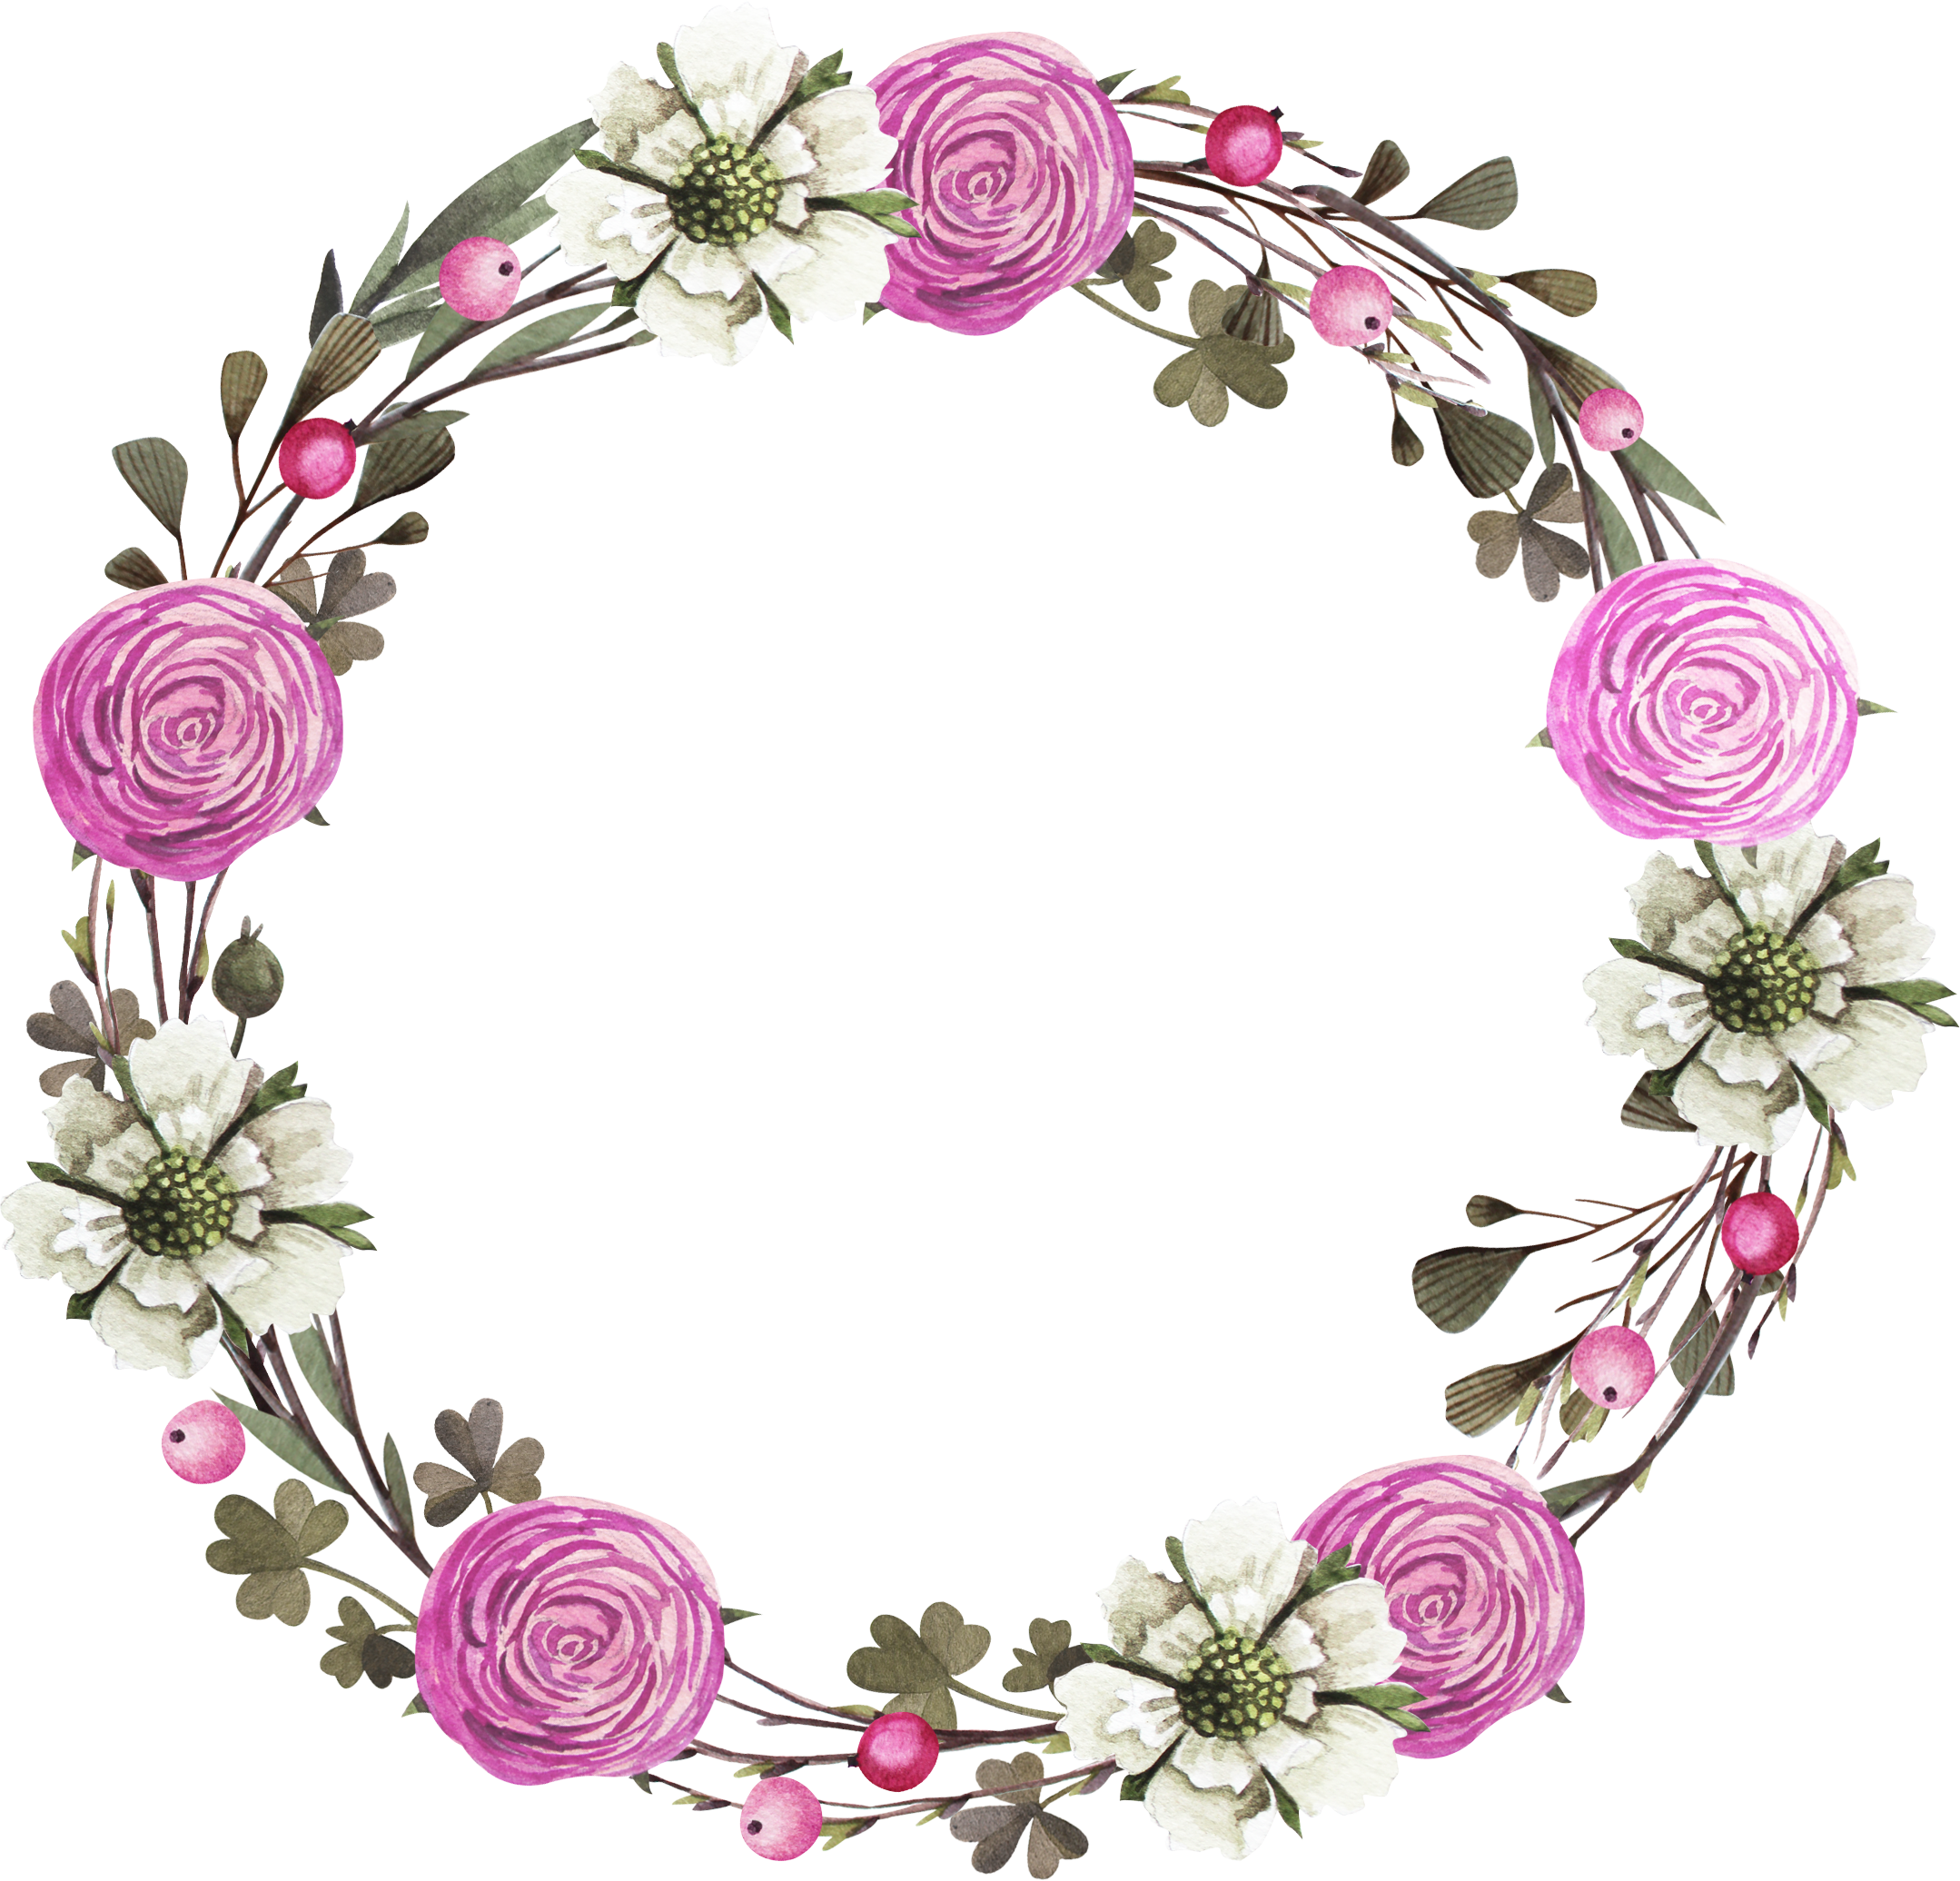 Clipart rose frame. Floral design wreath clip